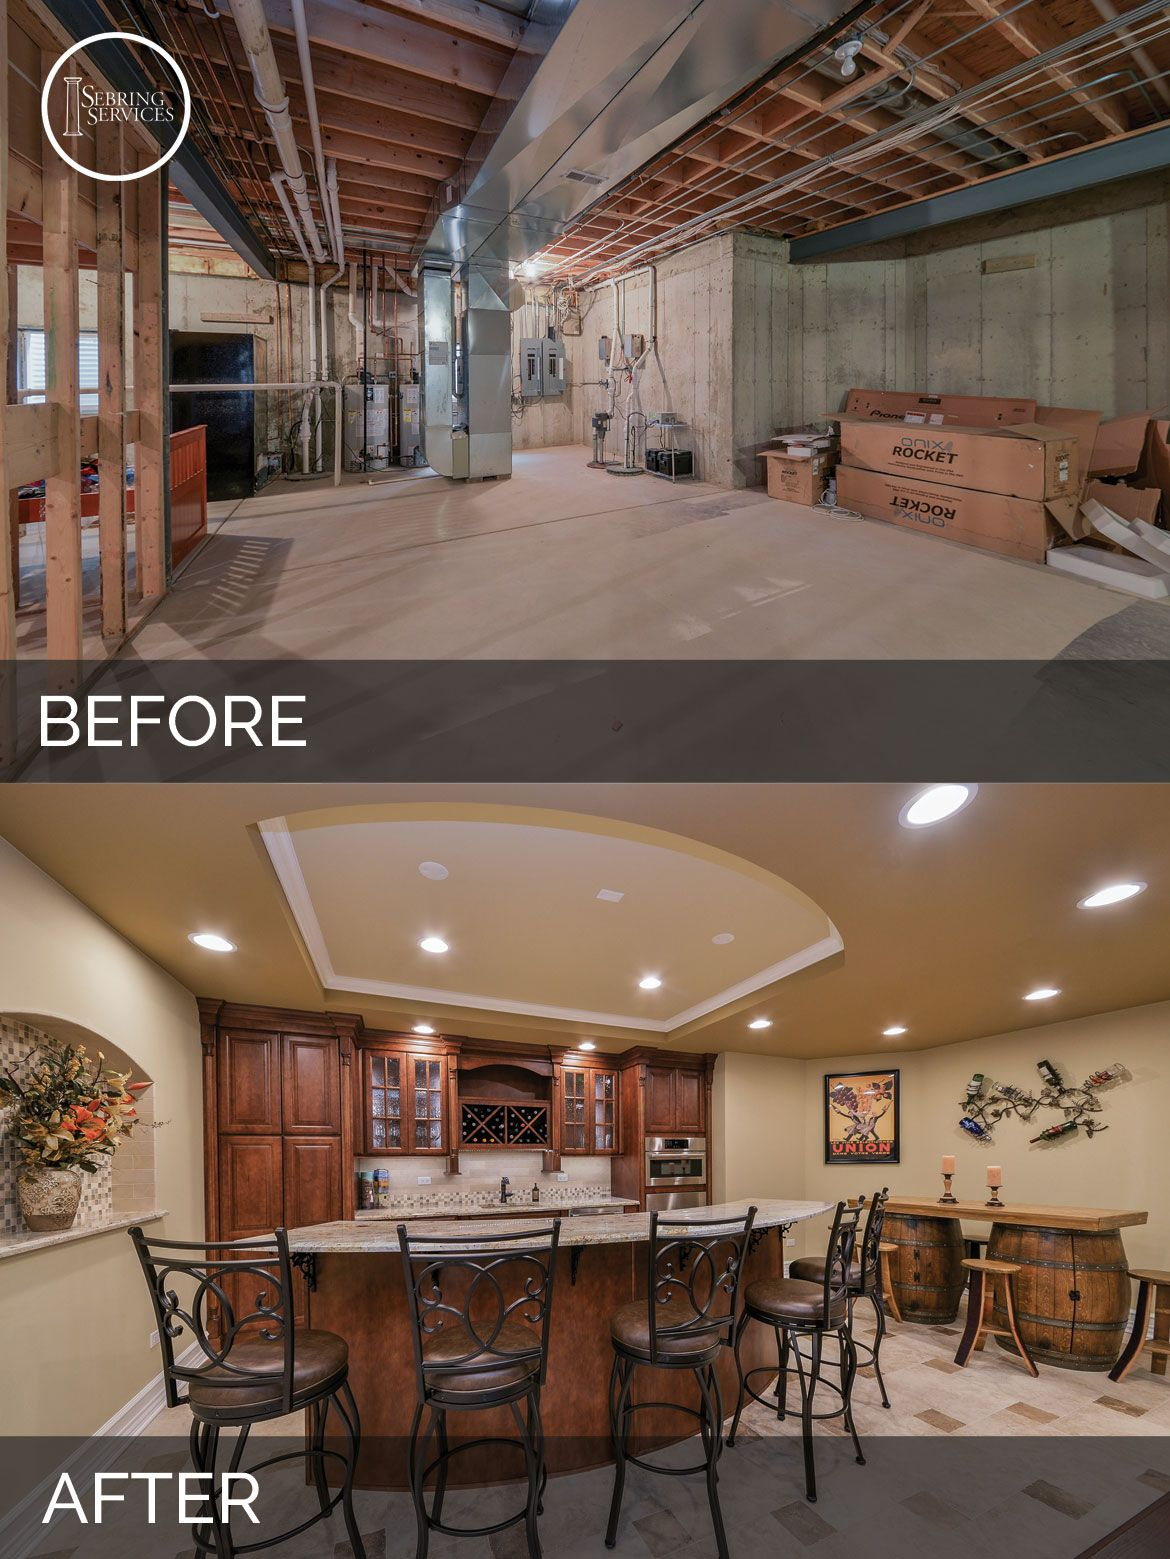 game room lighting ideas basement finishing ideas. Room Ideas · Naperville Basement Before \u0026 After Pictures - Sebring Services Game Lighting Finishing ;